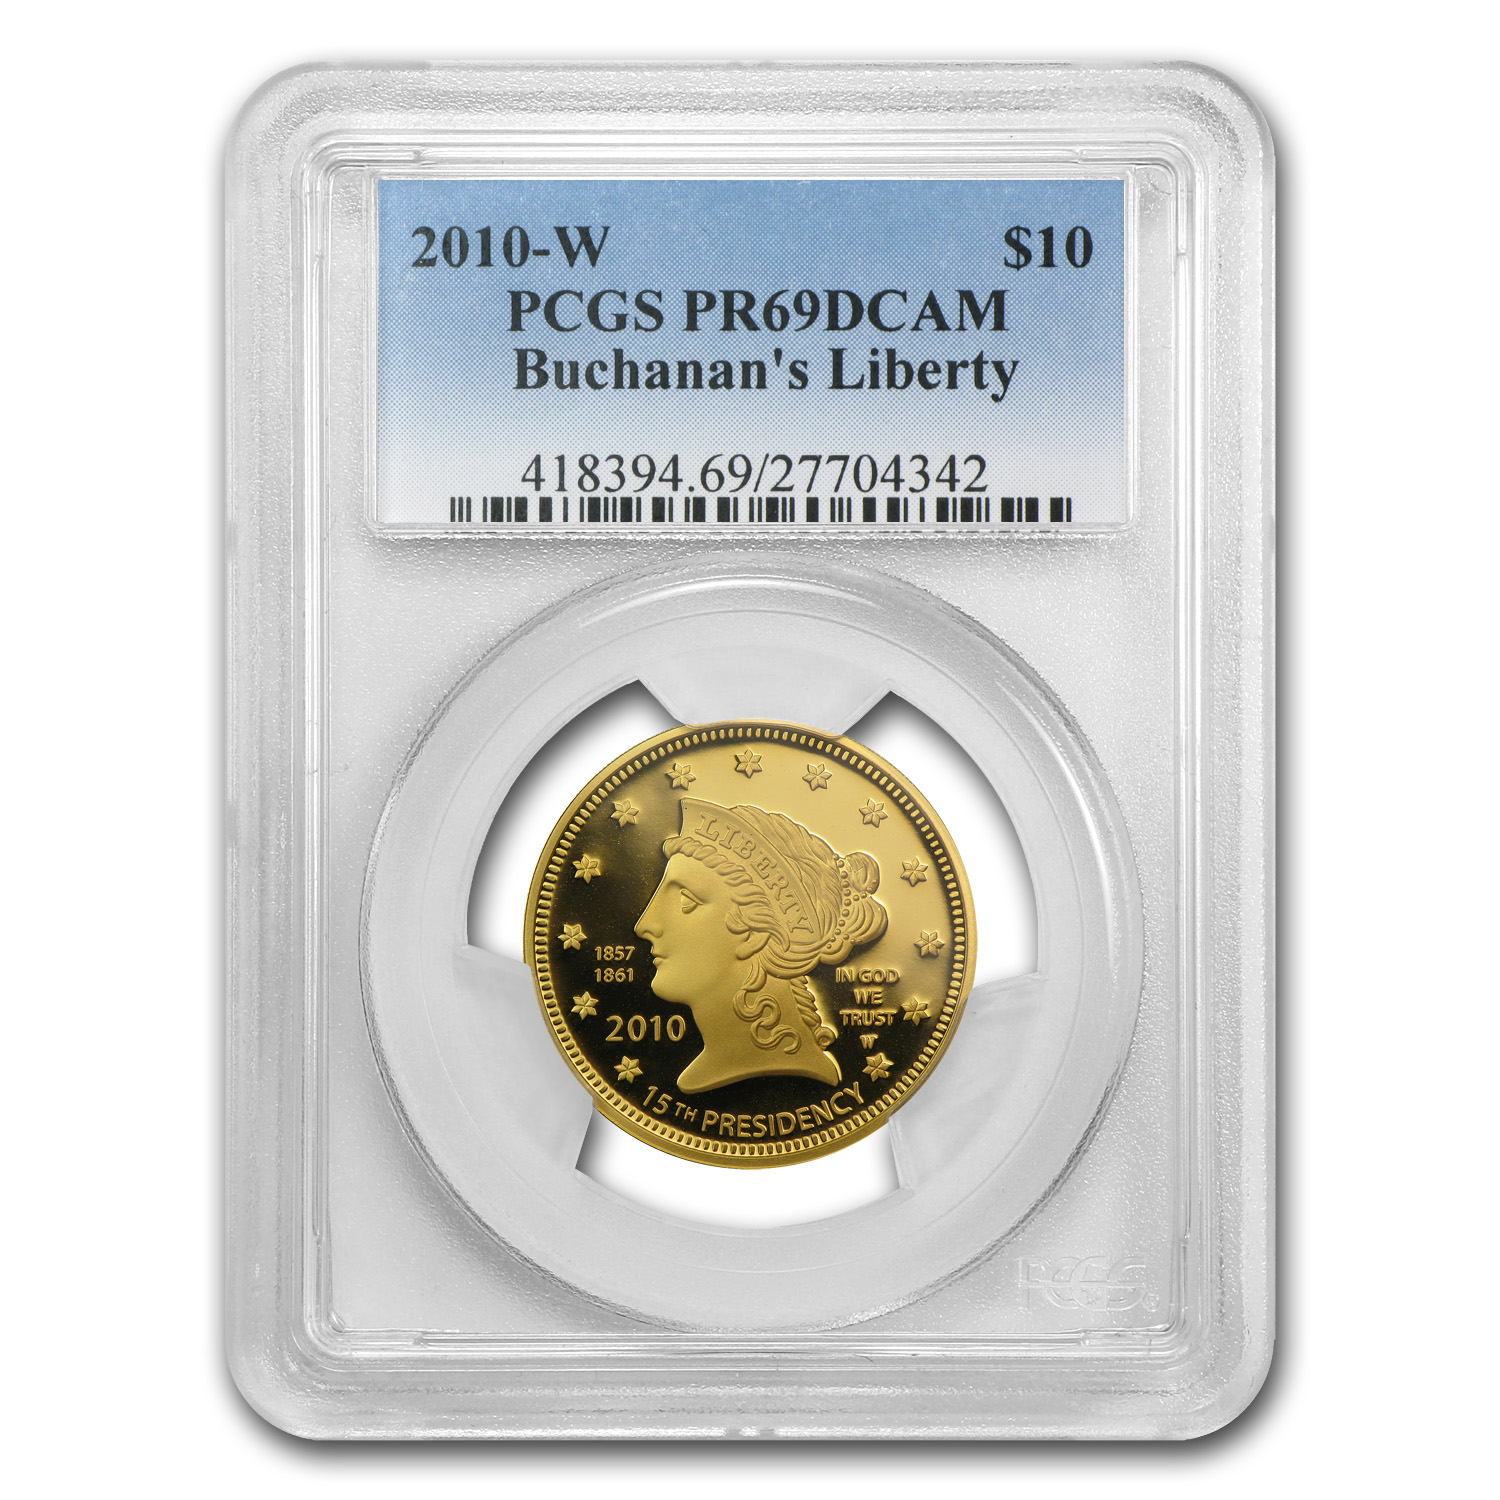 2010-W 1/2 oz Proof Gold Buchanan's Liberty PR-69 PCGS DCAM